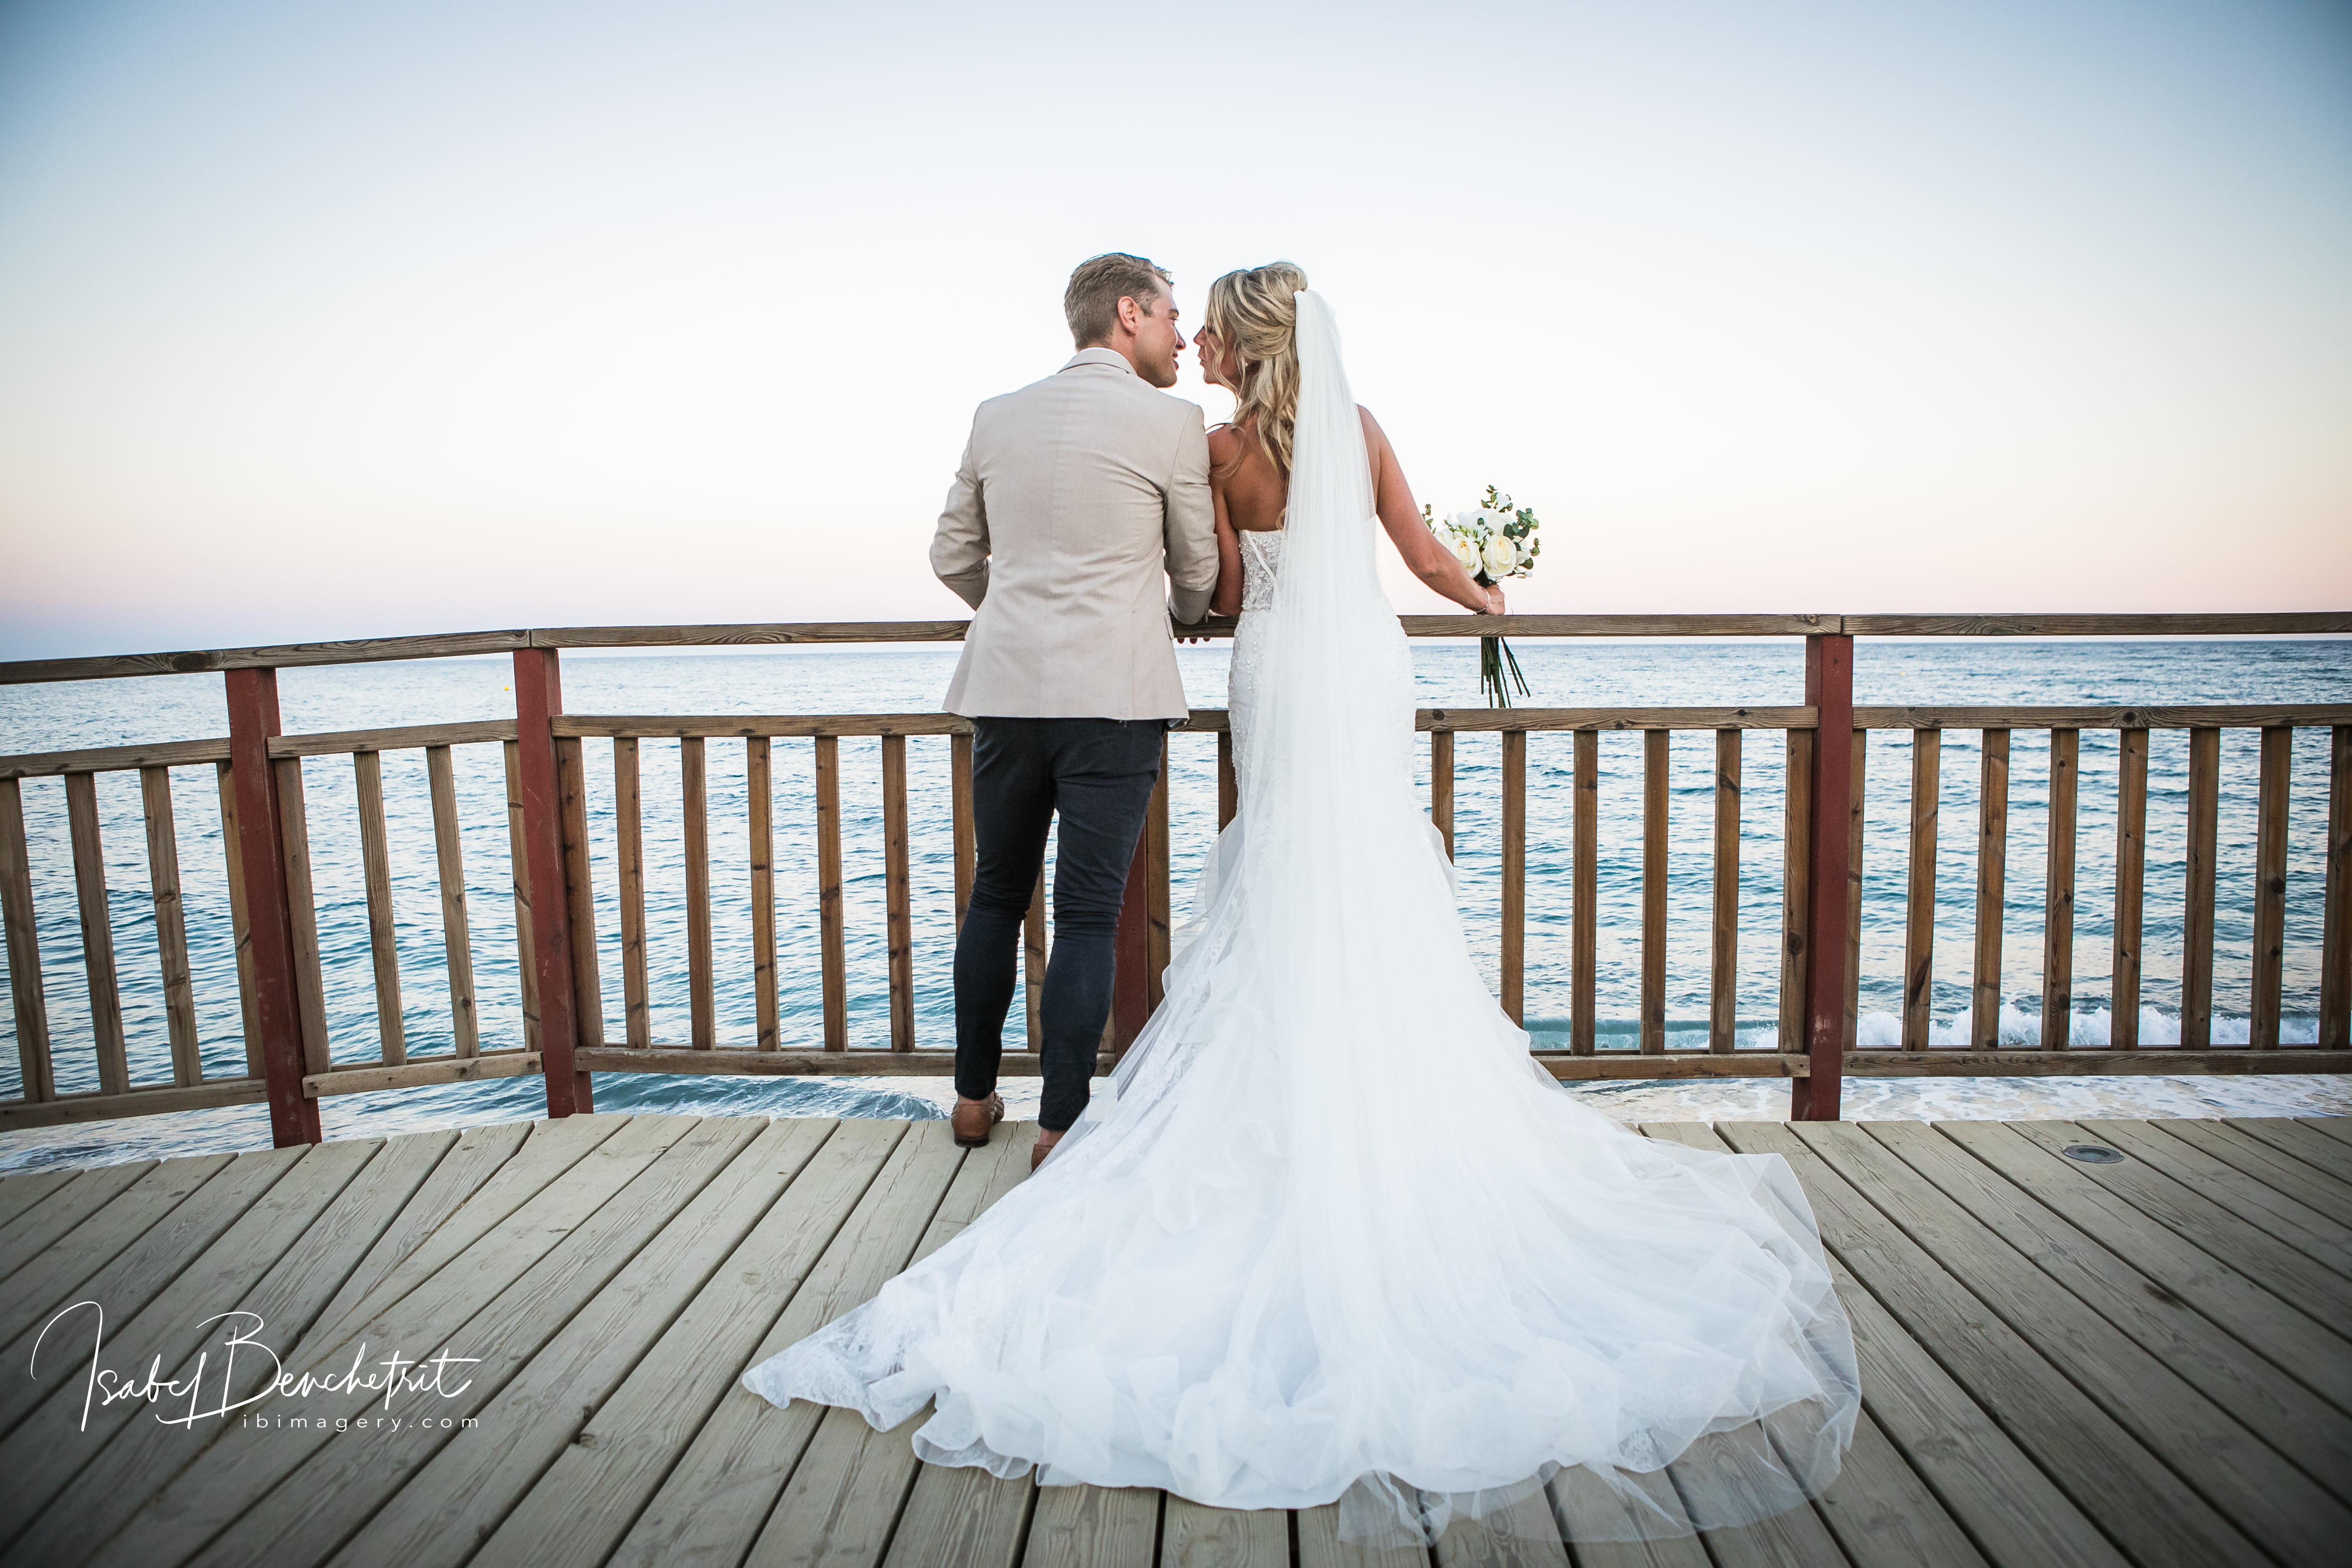 The bride and groom enjoying the seascape on the beach club's jetty